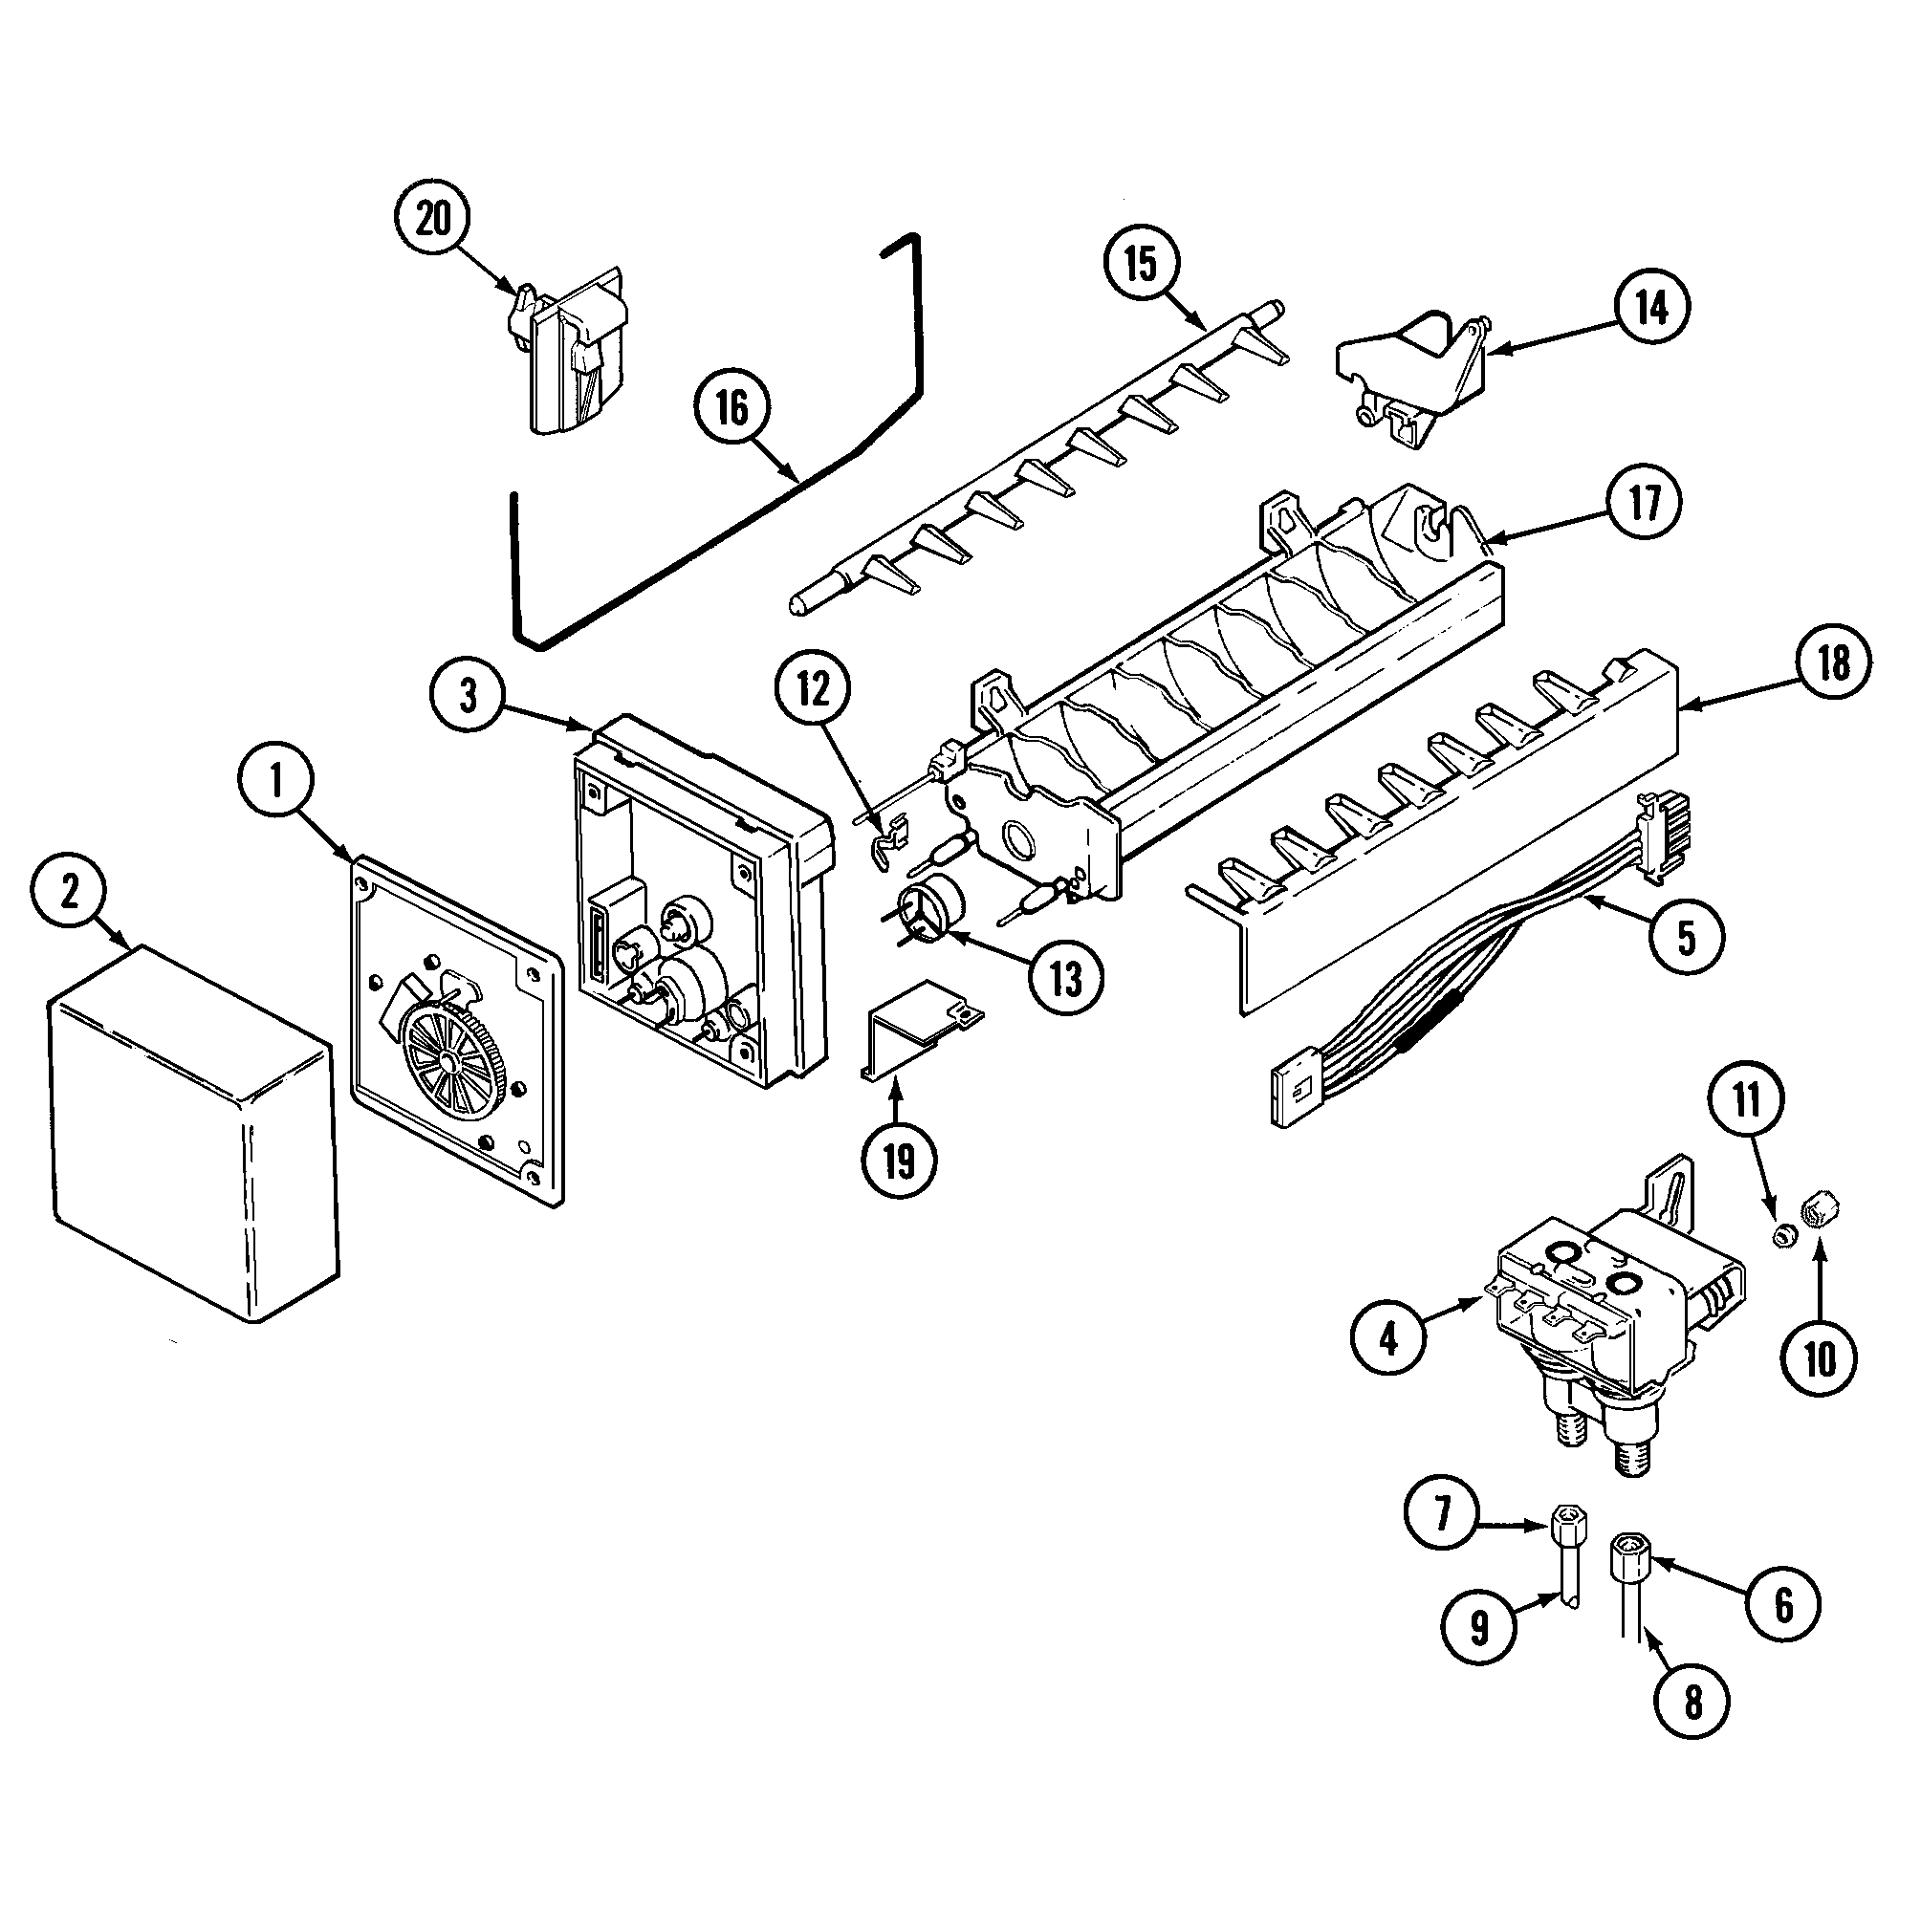 ICE MAKER Diagram & Parts List for Model gc2227dedb Maytag